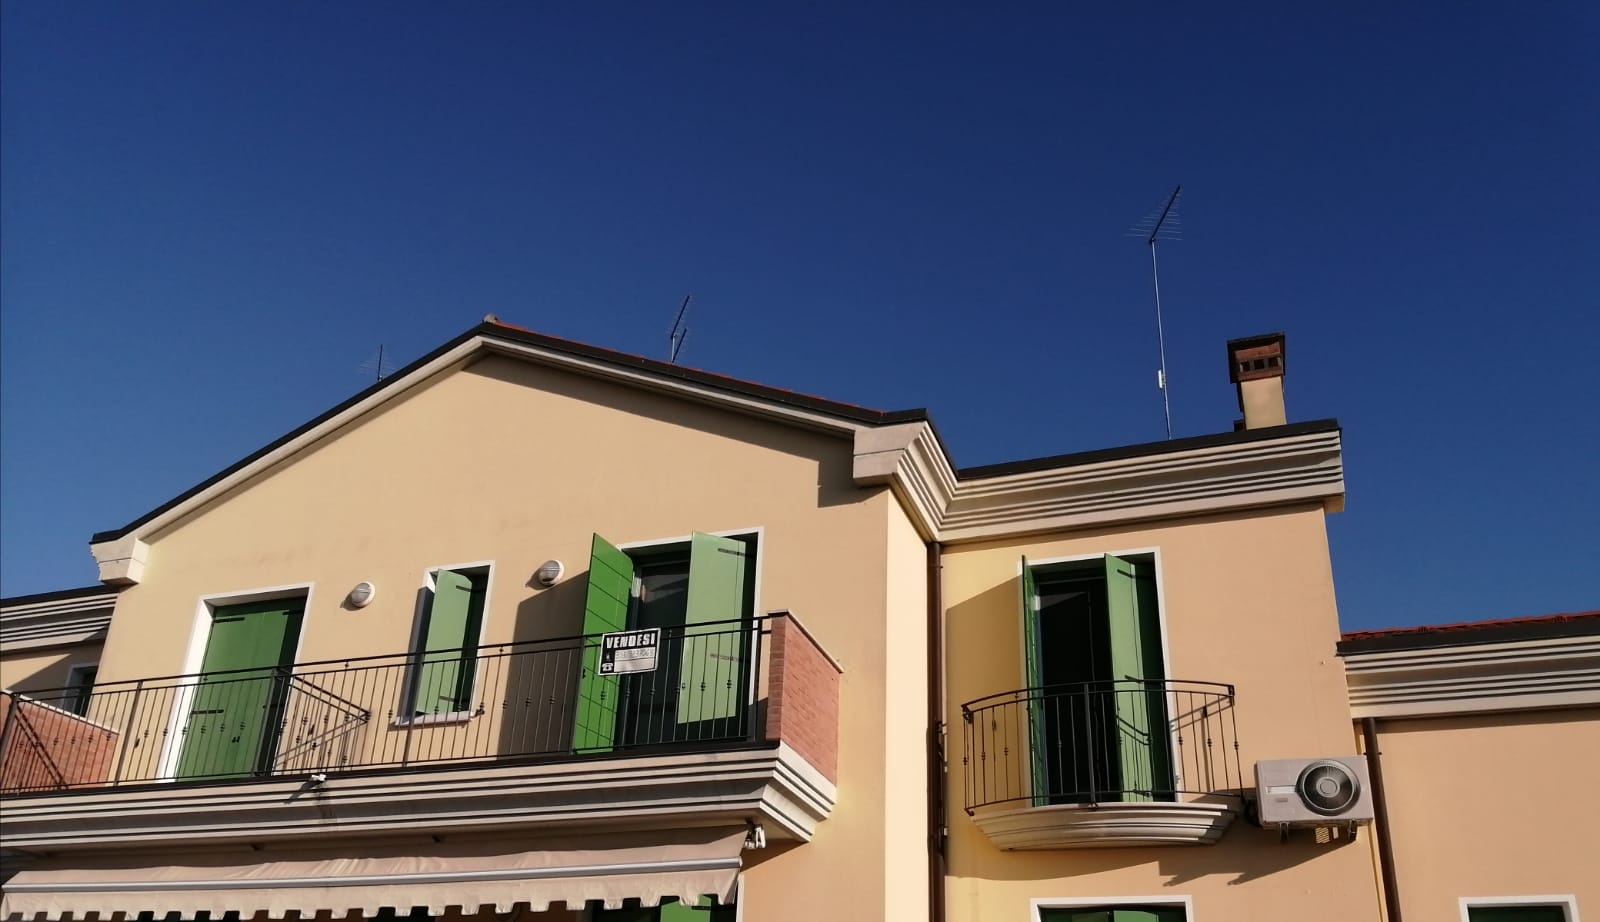 Residenziale  2 camere